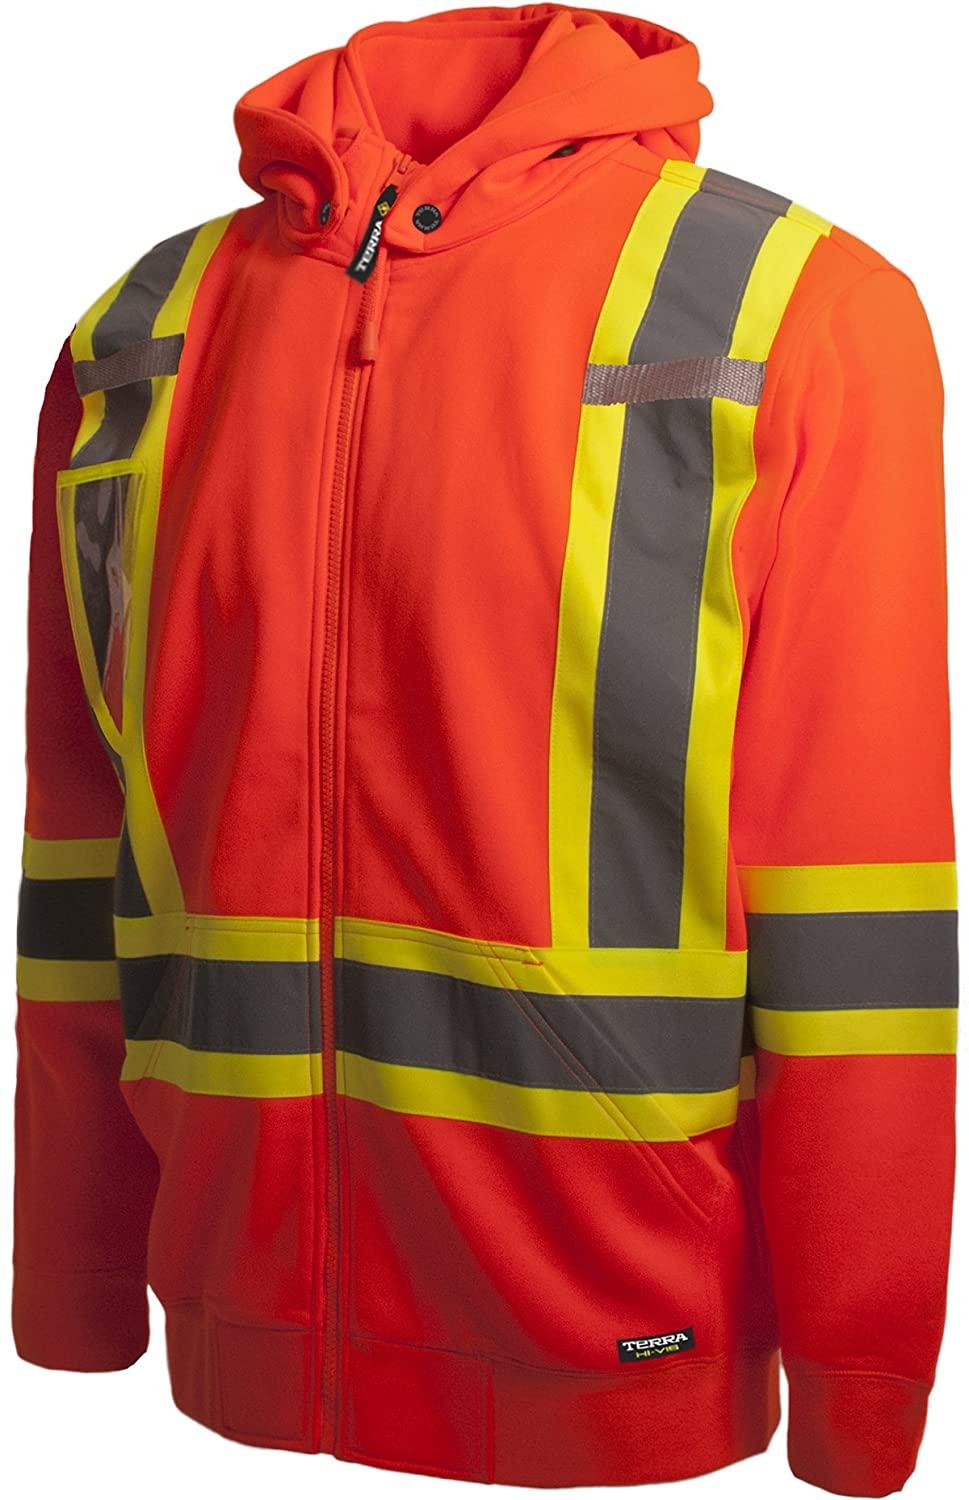 Terra 116506ORXL High-Visibility Detachable Hood Reflective Safety Hoodie X-Large BBH Orange